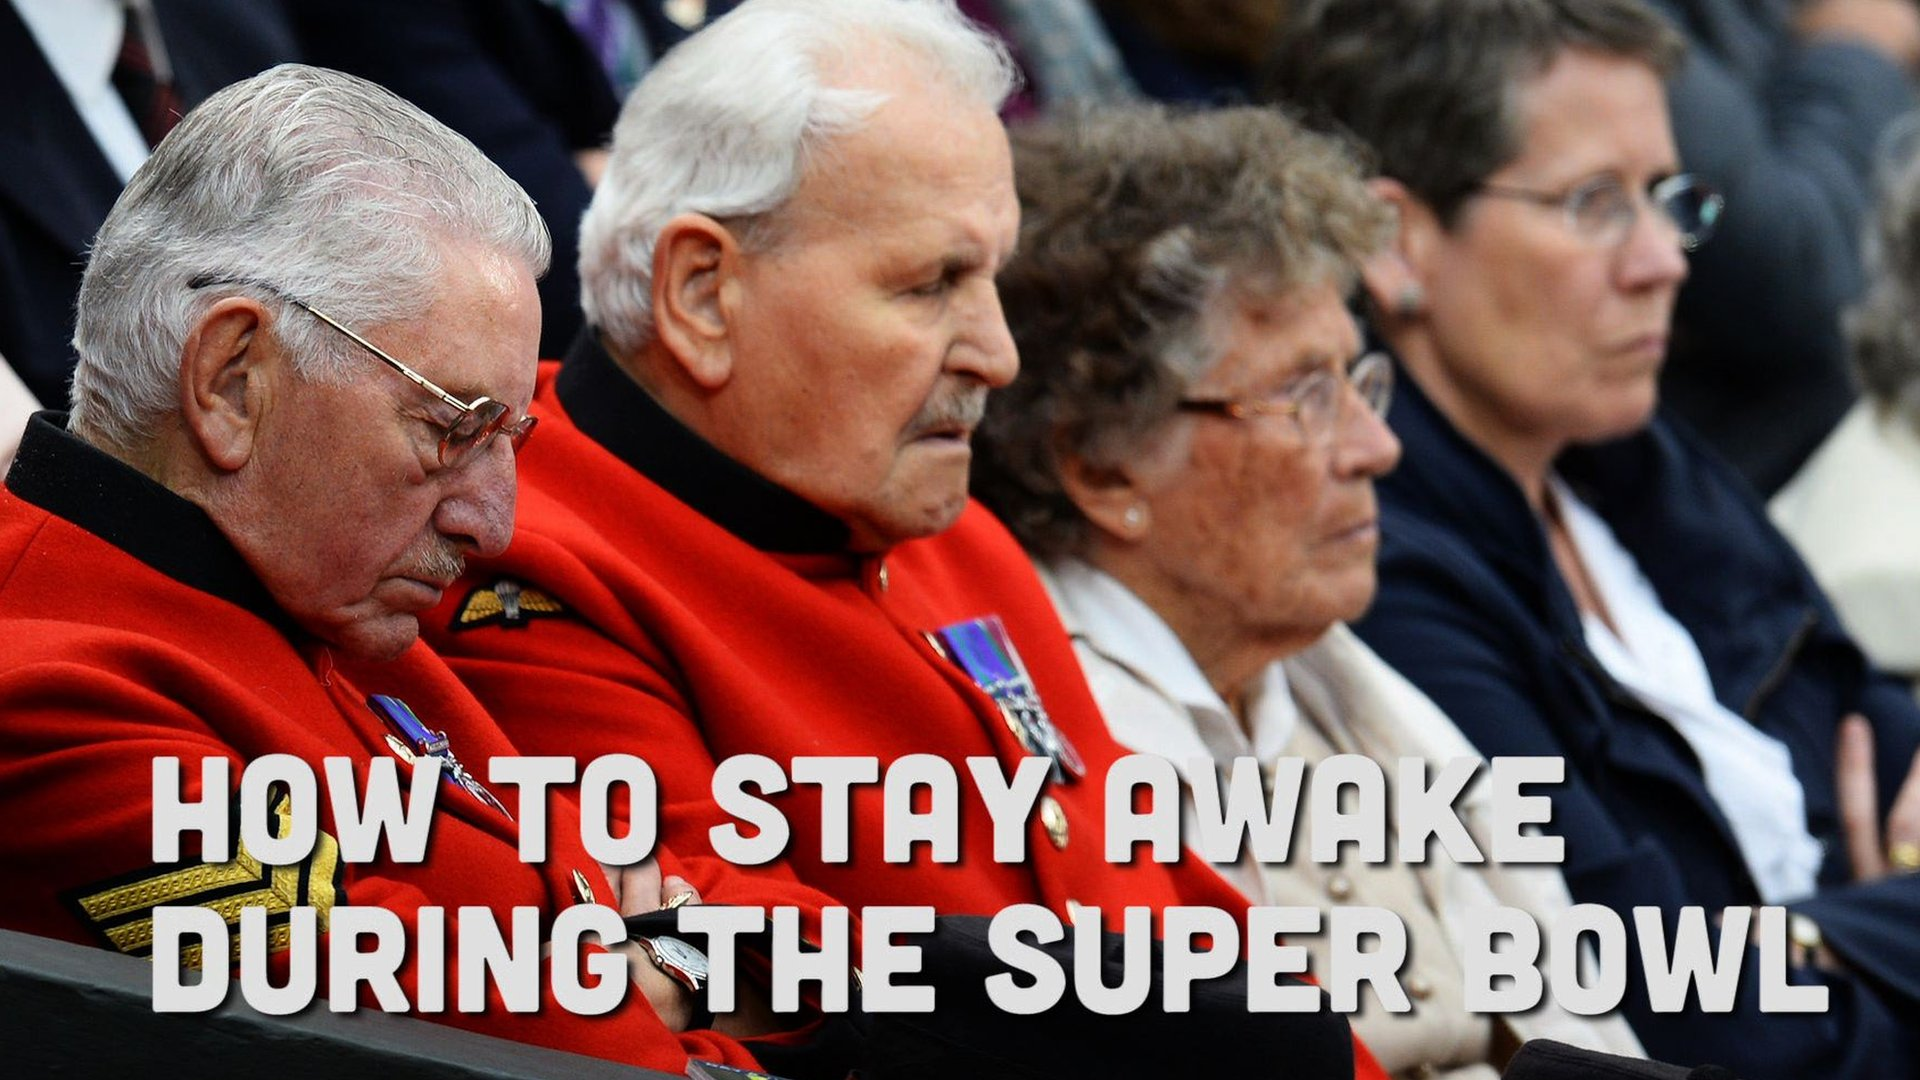 Super Bowl 50: How to stay awake